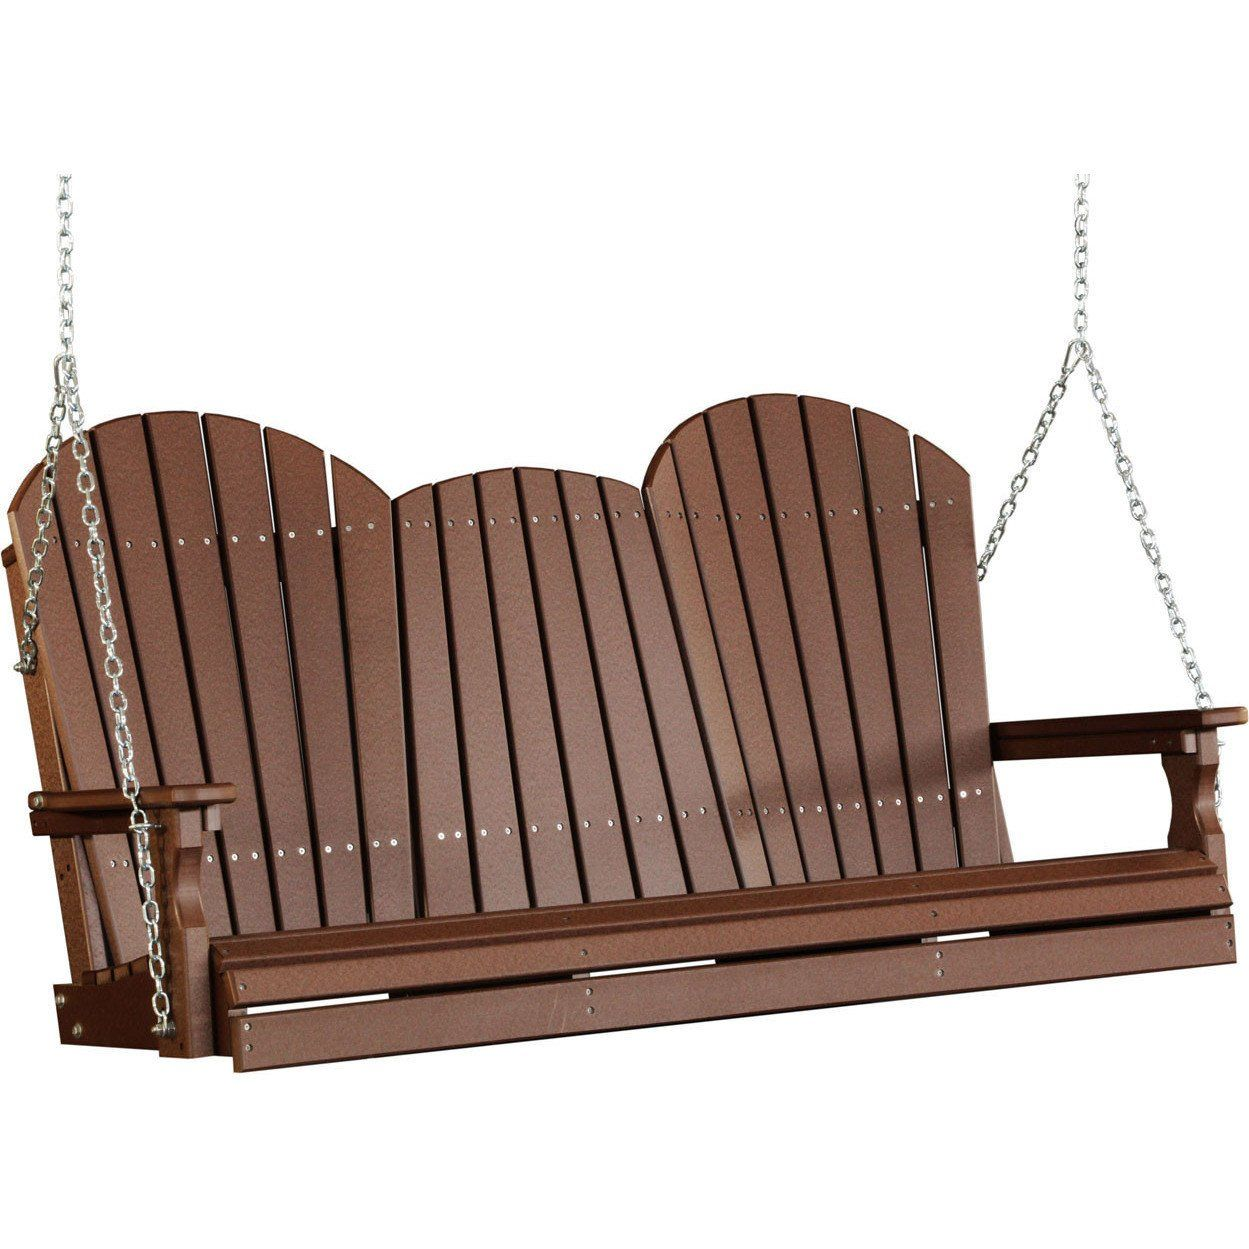 LuxCraft Adirondack 5ft. Recycled Plastic Porch Swing